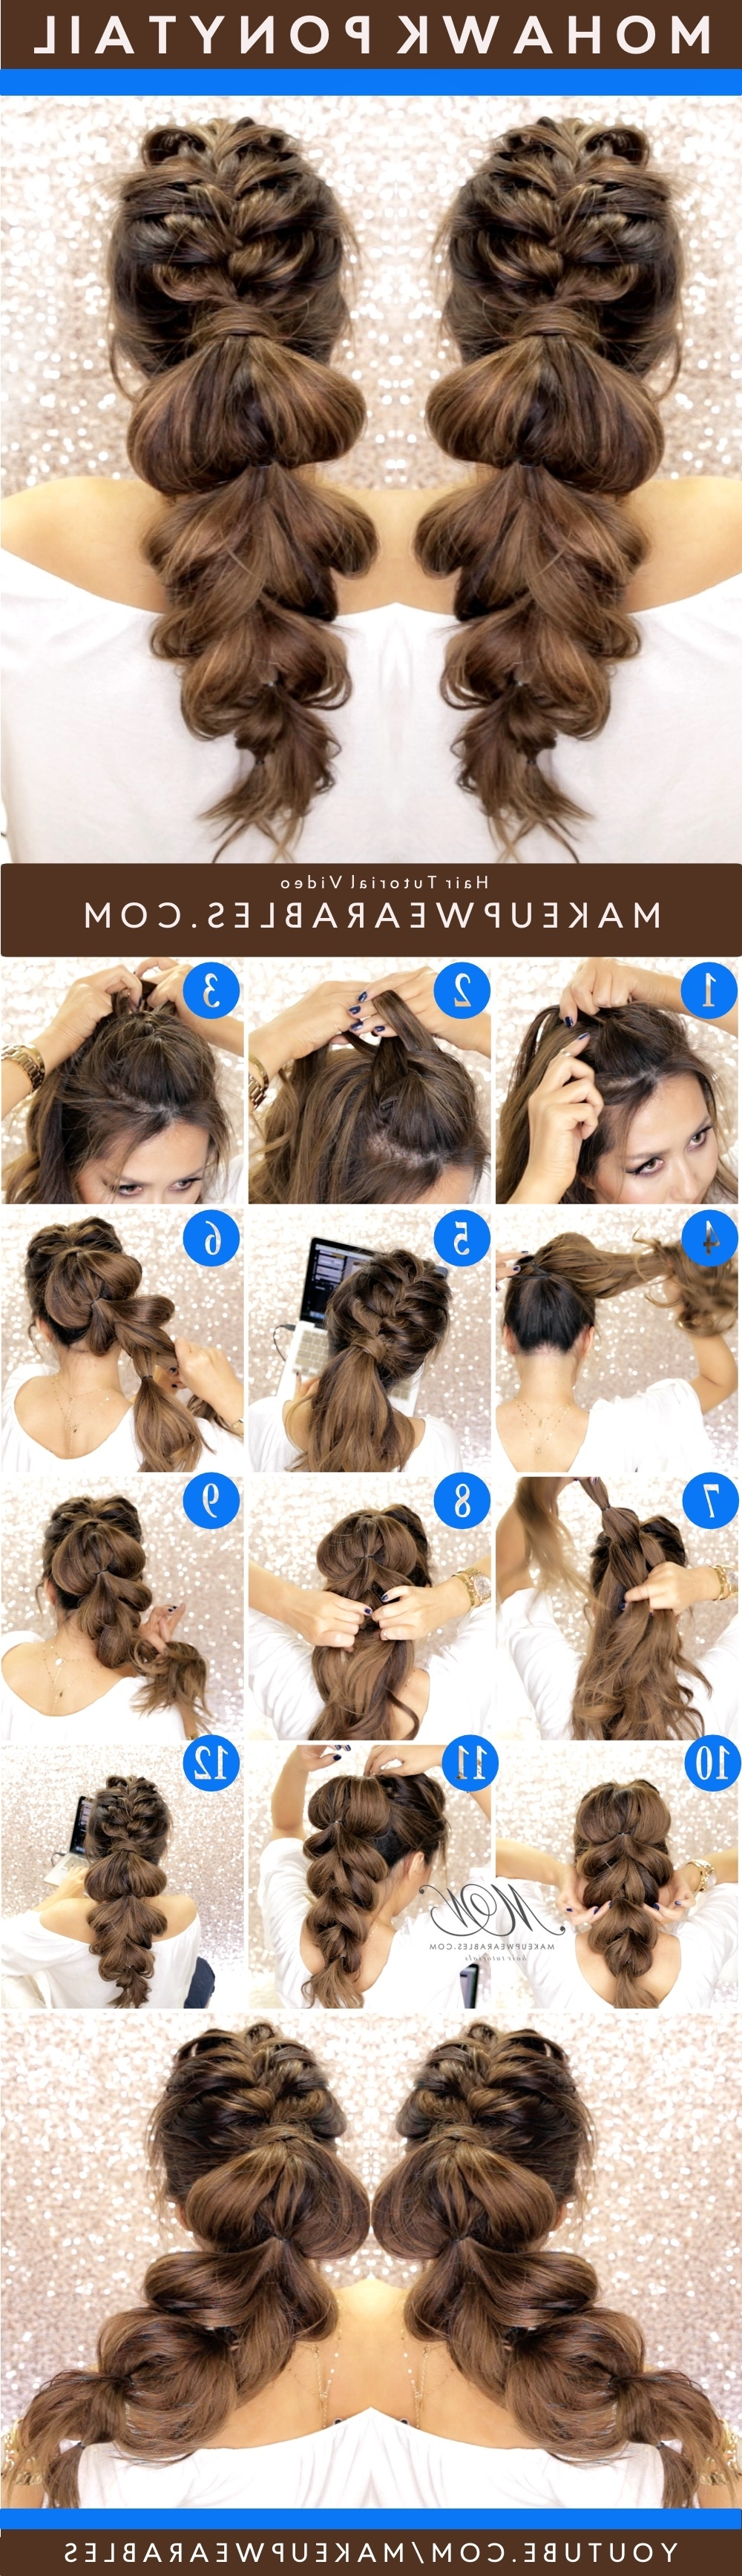 Most Romantic Mohawk Braid Ever! (View 7 of 20)